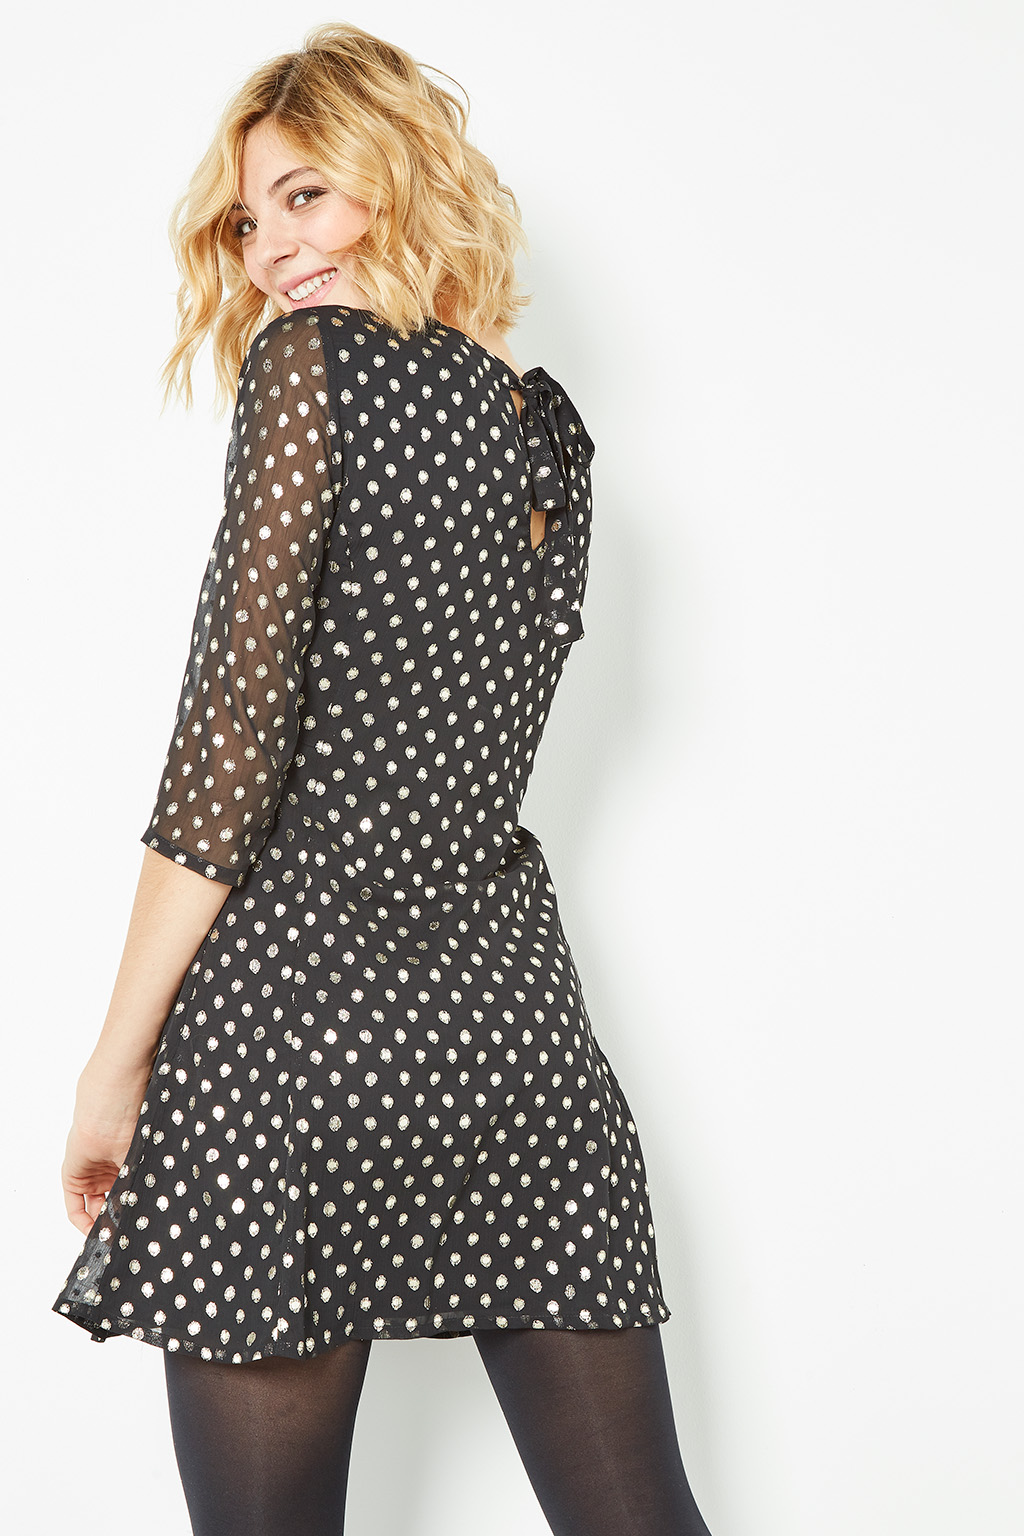 Robe à pois #collectionIRL sur Showroomprivé.